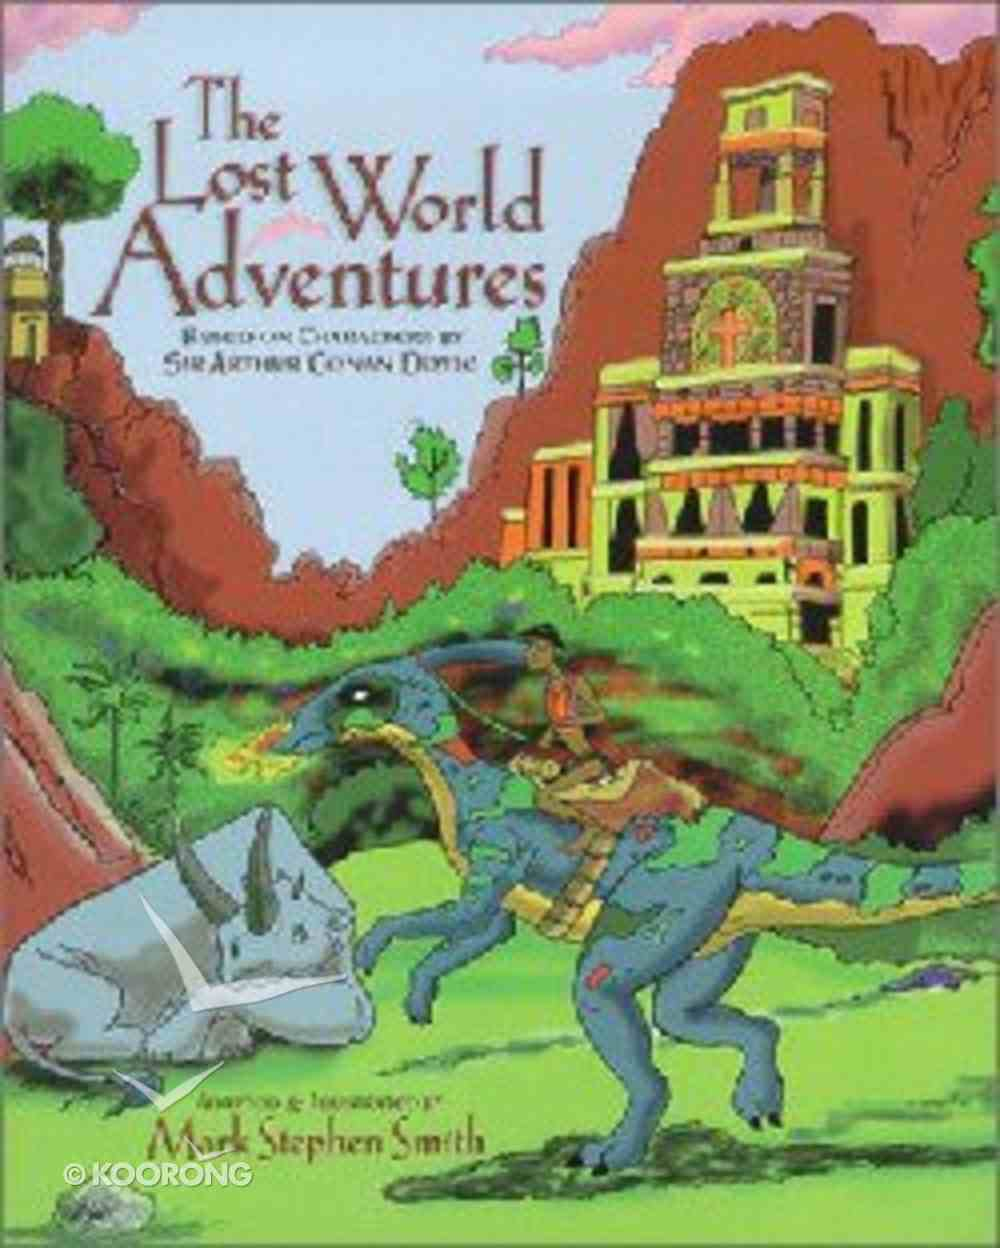 The Lost World Adventures Paperback